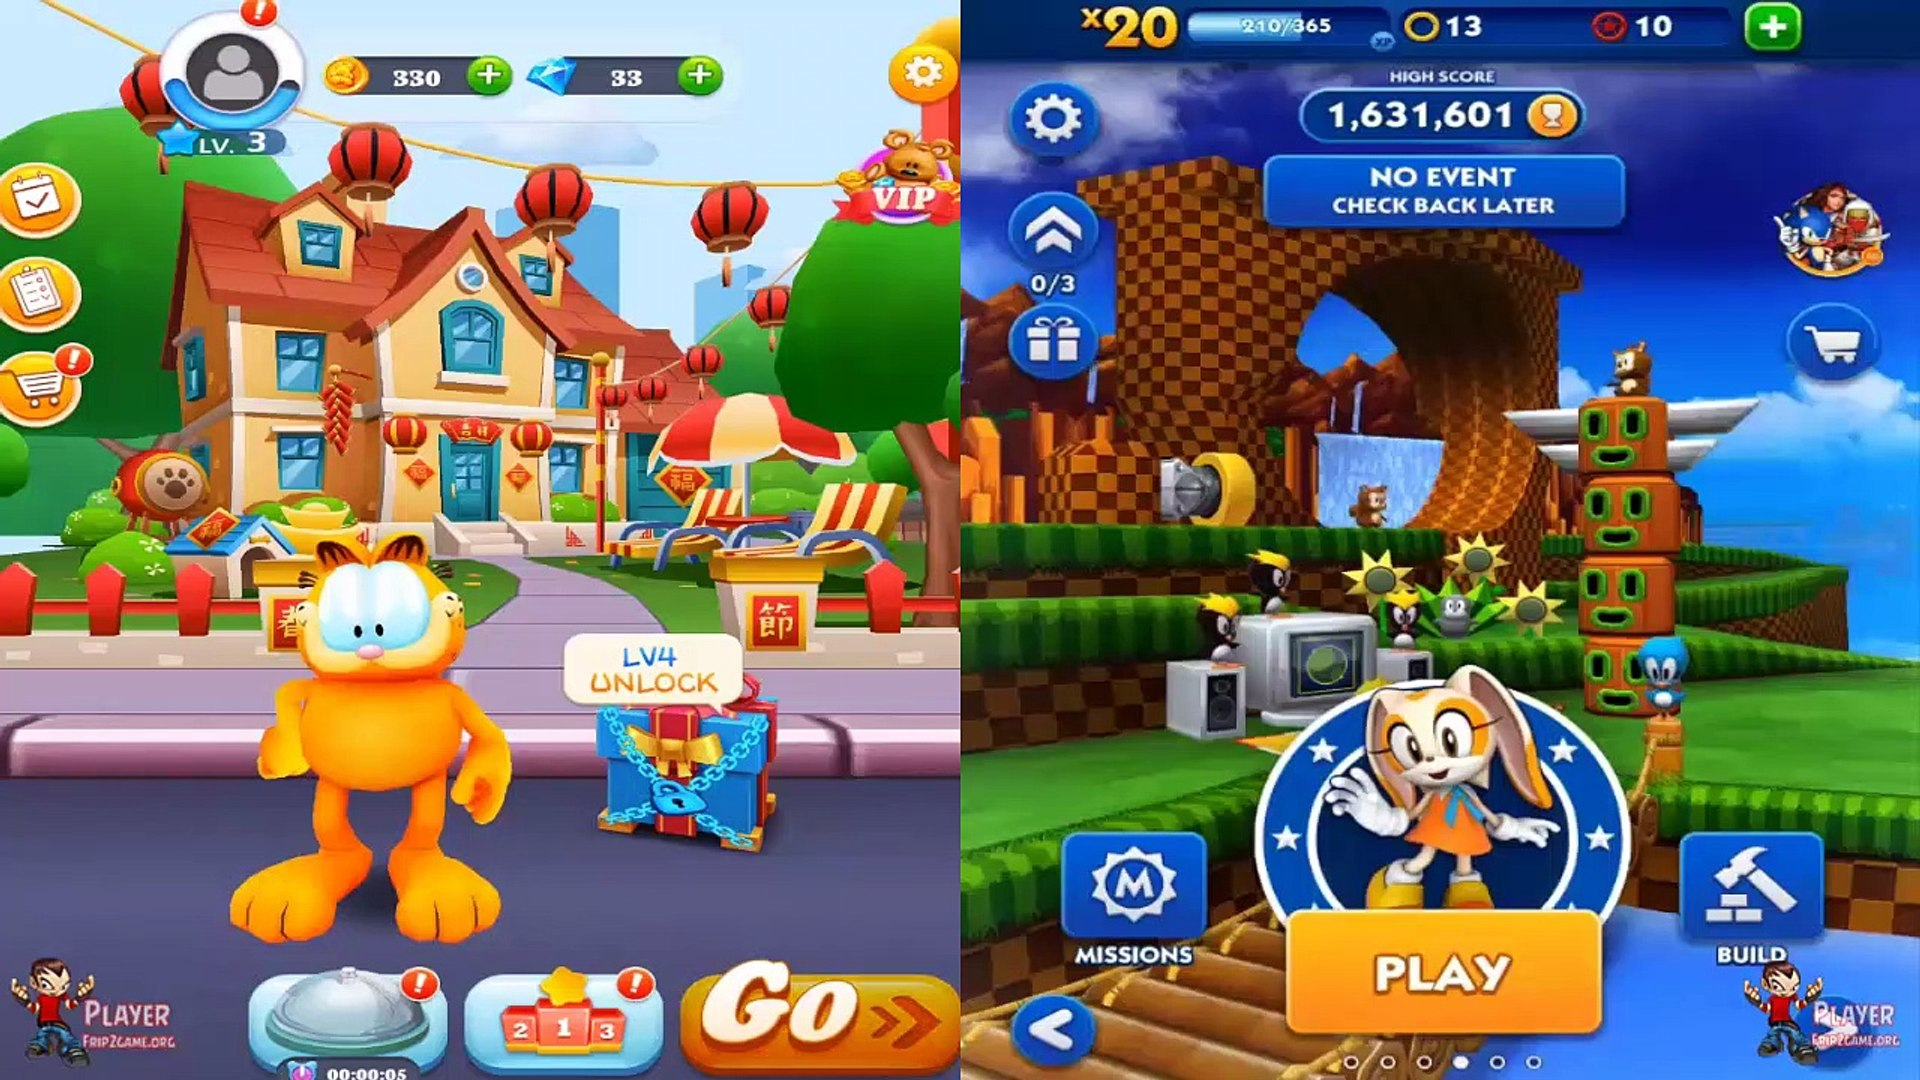 Garfield Rush Vs Sonic Dash Ios Android Gameplay Walkthrough Video Dailymotion